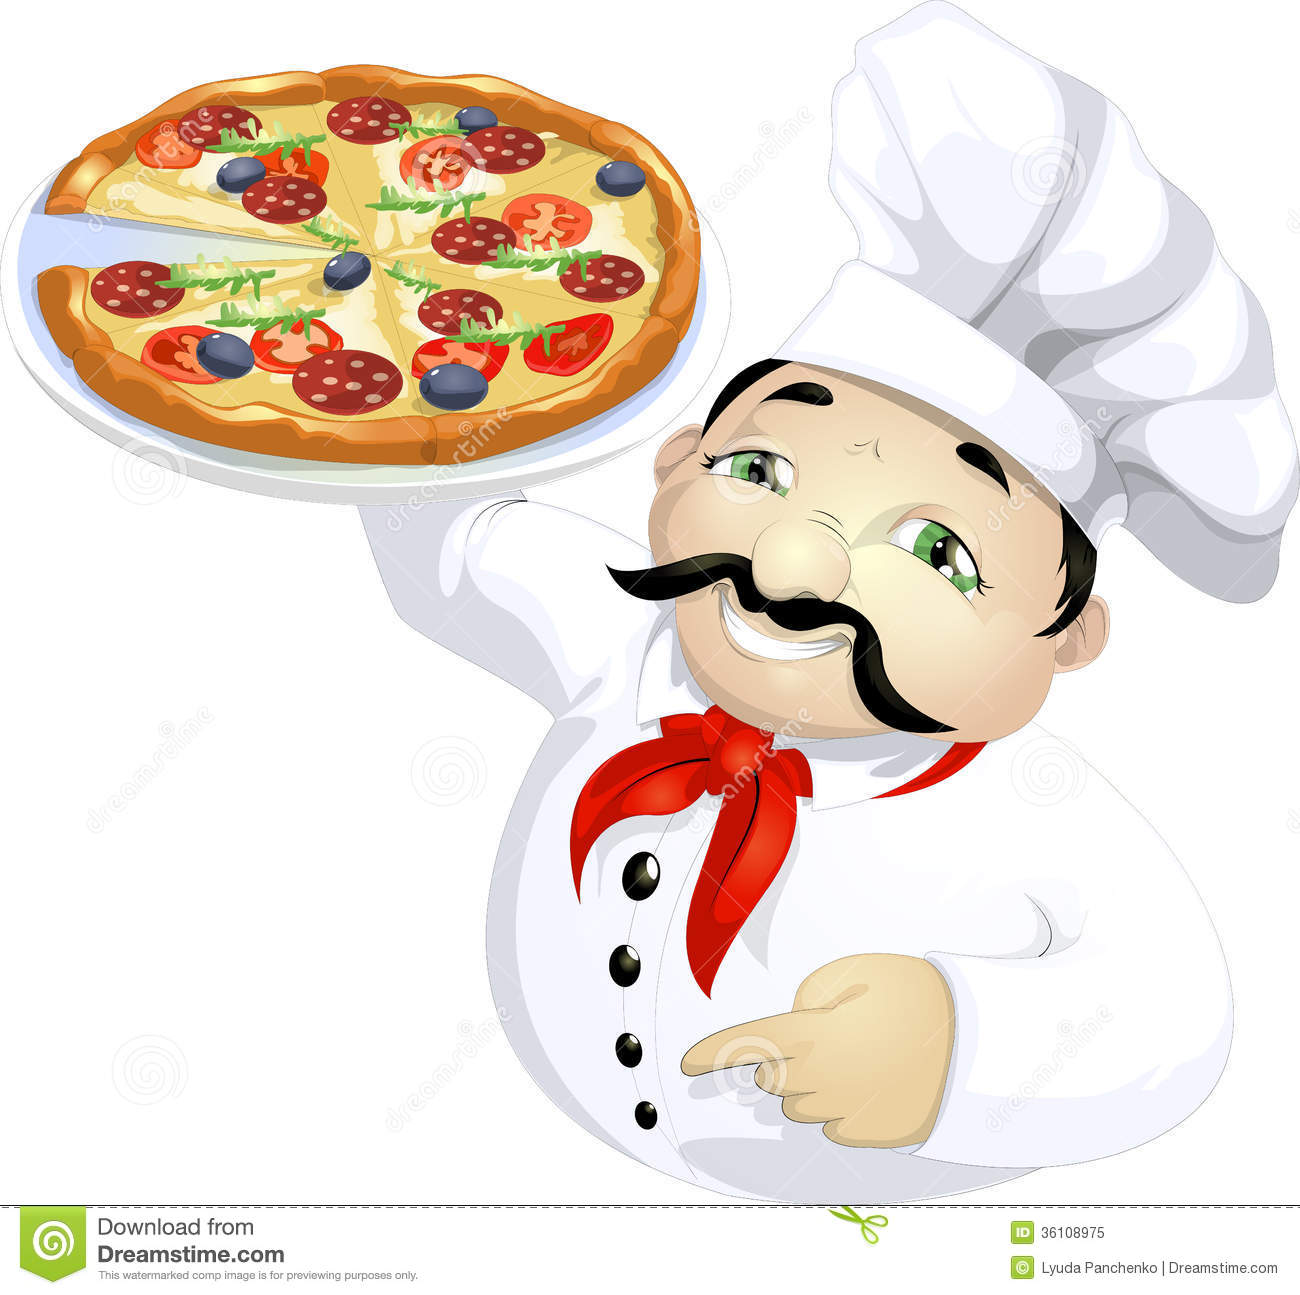 Mr chef clipart svg freeuse library International Cuisine Chefs Cartoons Stock Vector - Image: 45596641 svg freeuse library